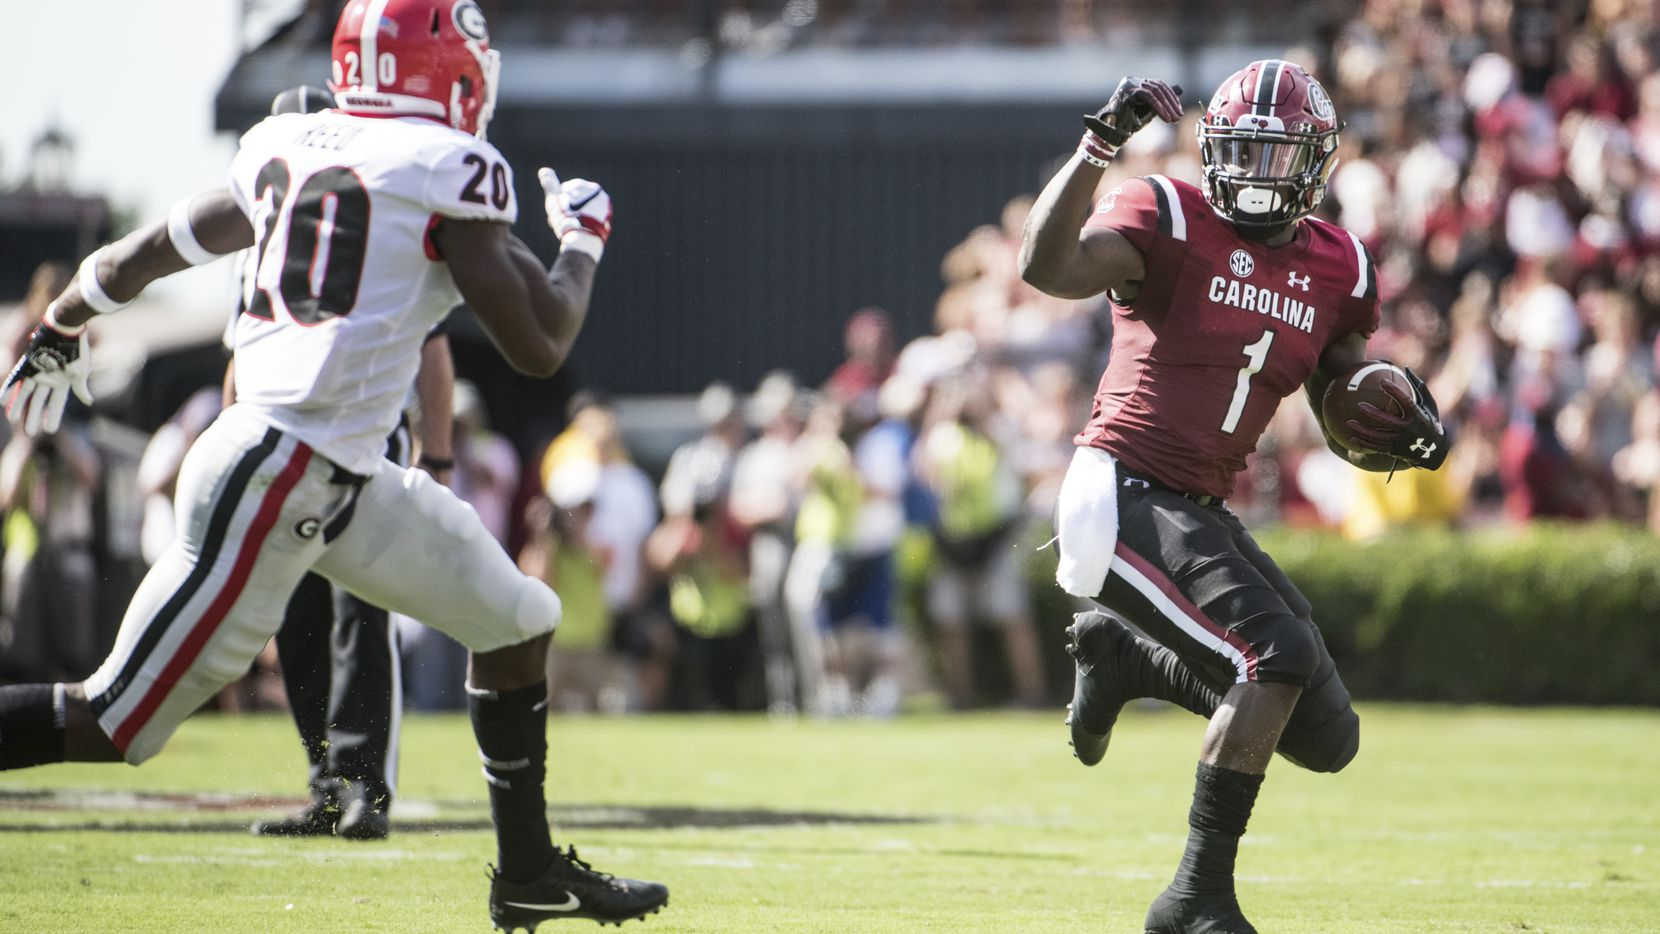 South Carolina wide receiver Deebo Samuel (1) runs with the ball against Georgia defensive back J.R. Reed (20) during the second half of an NCAA college football game Saturday, Sept. 8, 2018, in Columbia, S.C. Georgia defeated South Carolina 41-17. (AP Photo/Sean Rayford)